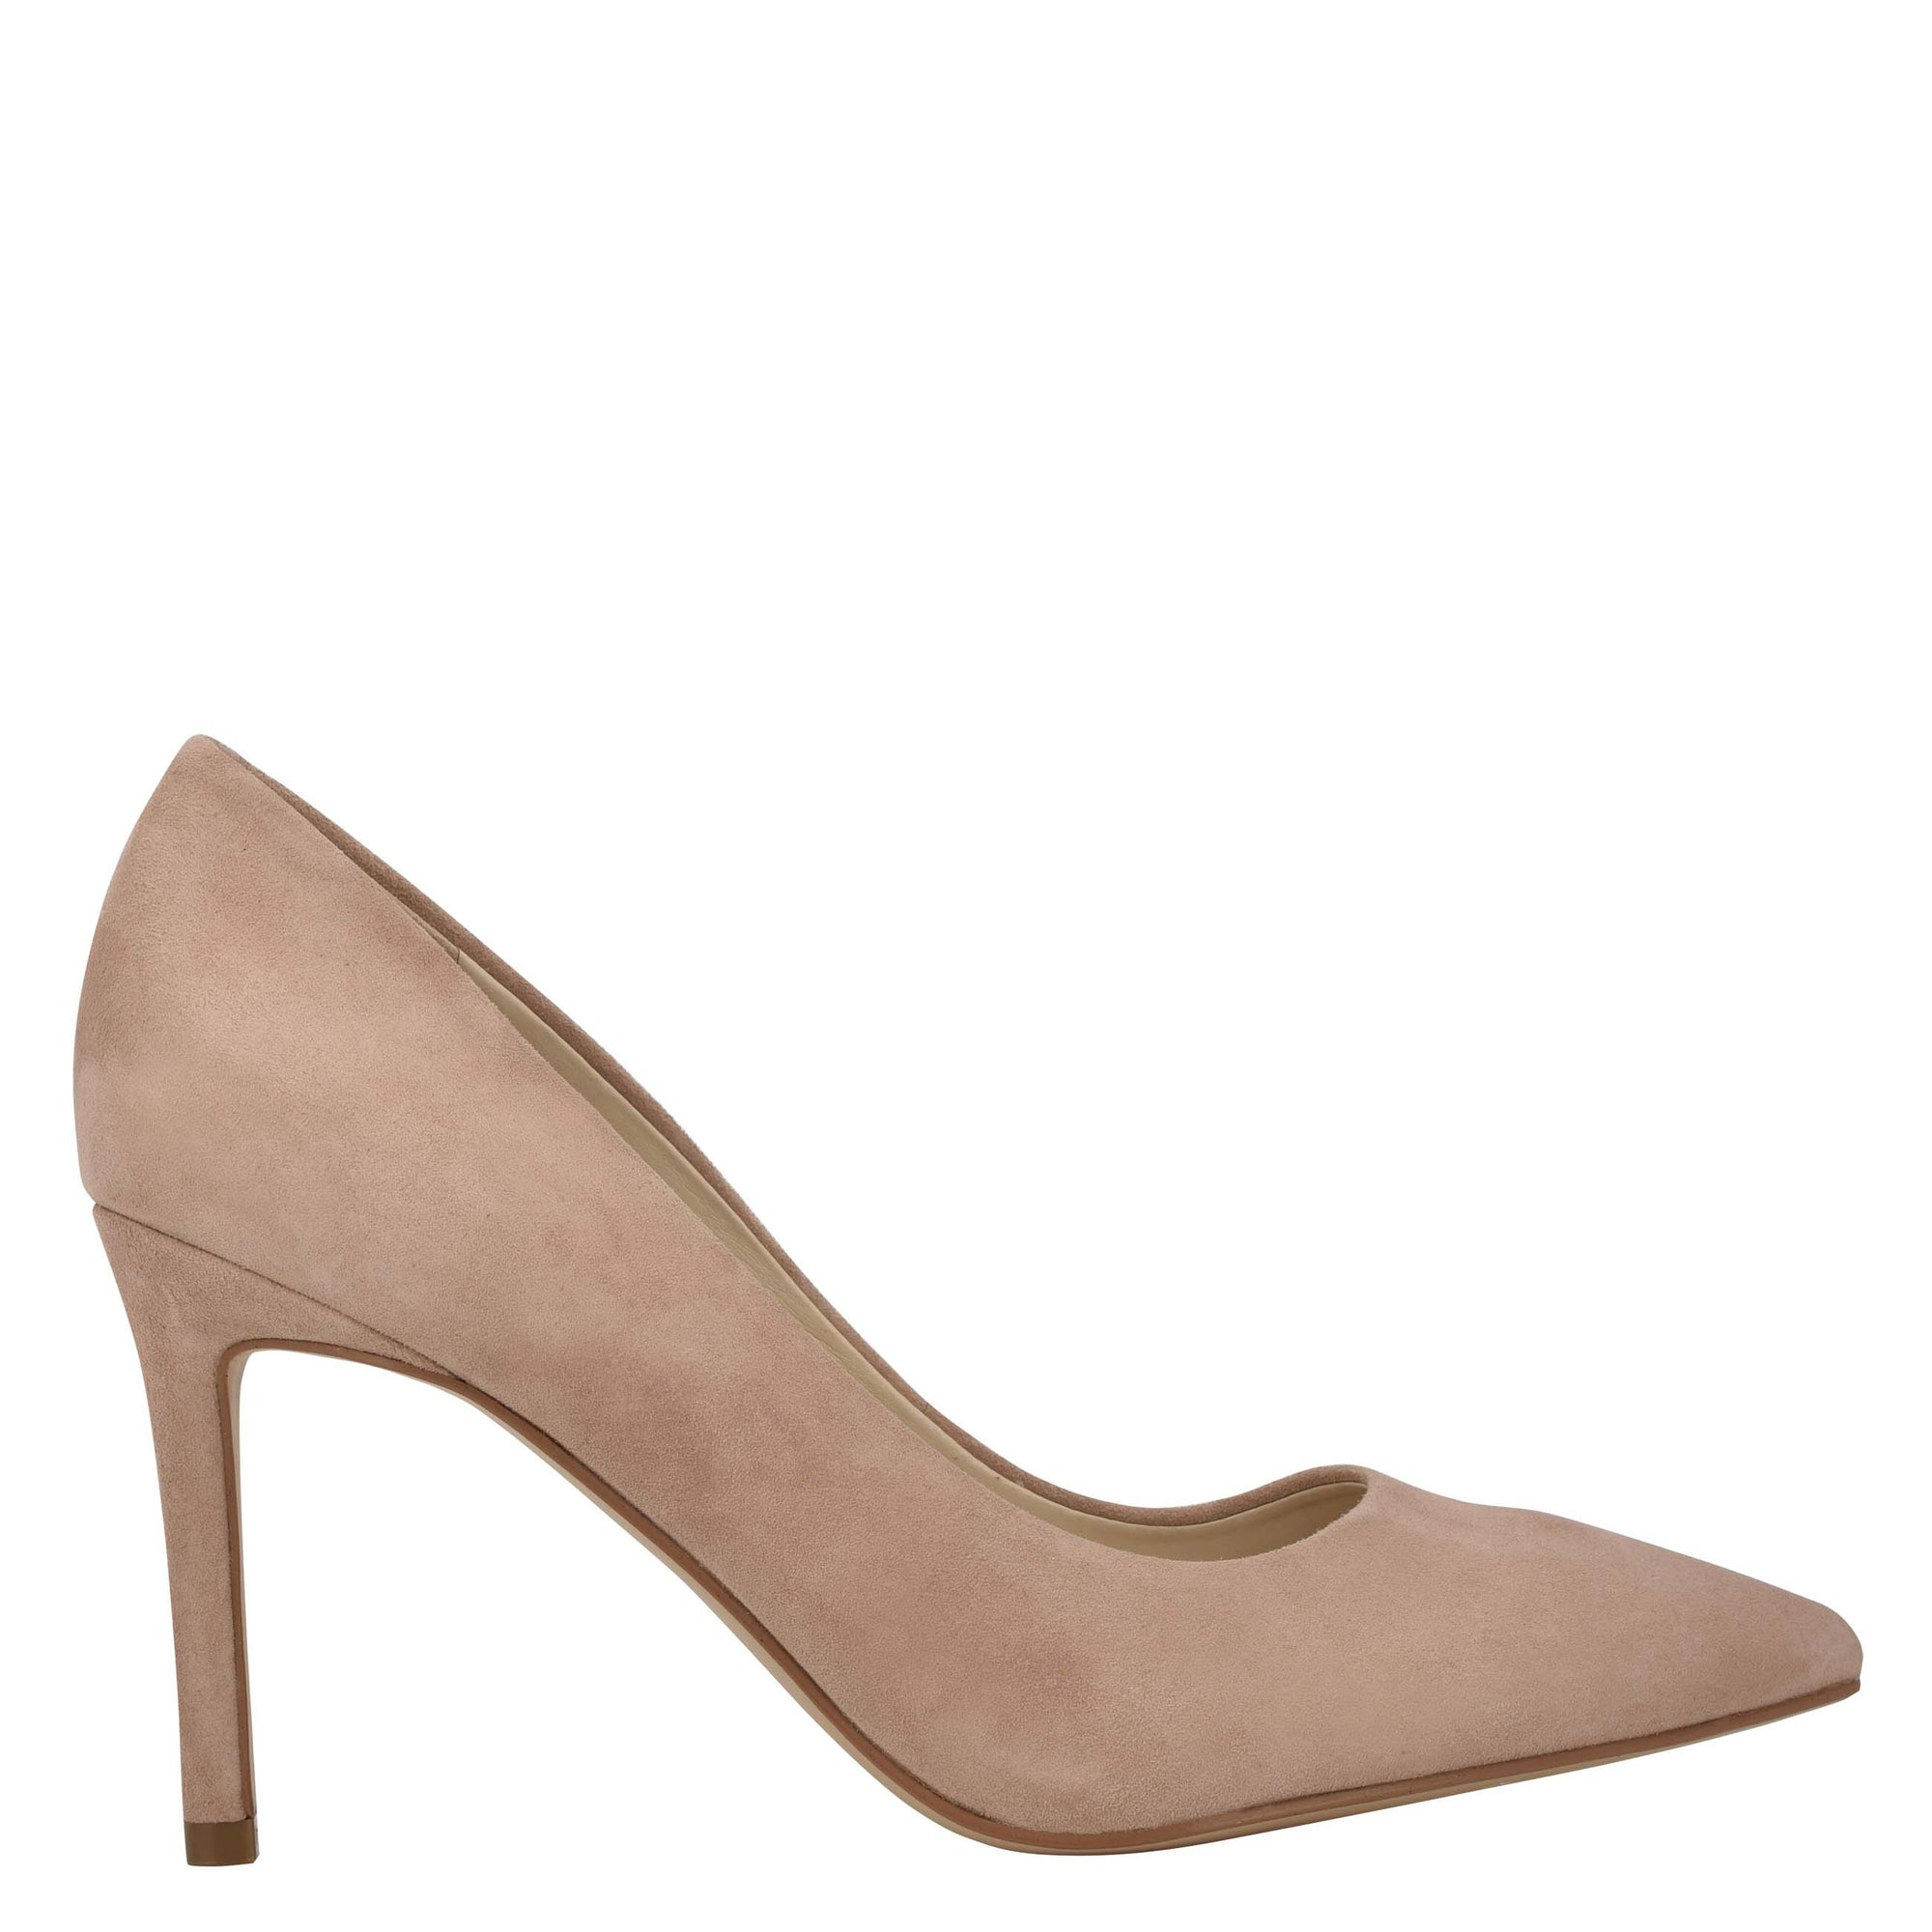 Manque Pointy Toe Pumps - Nine West